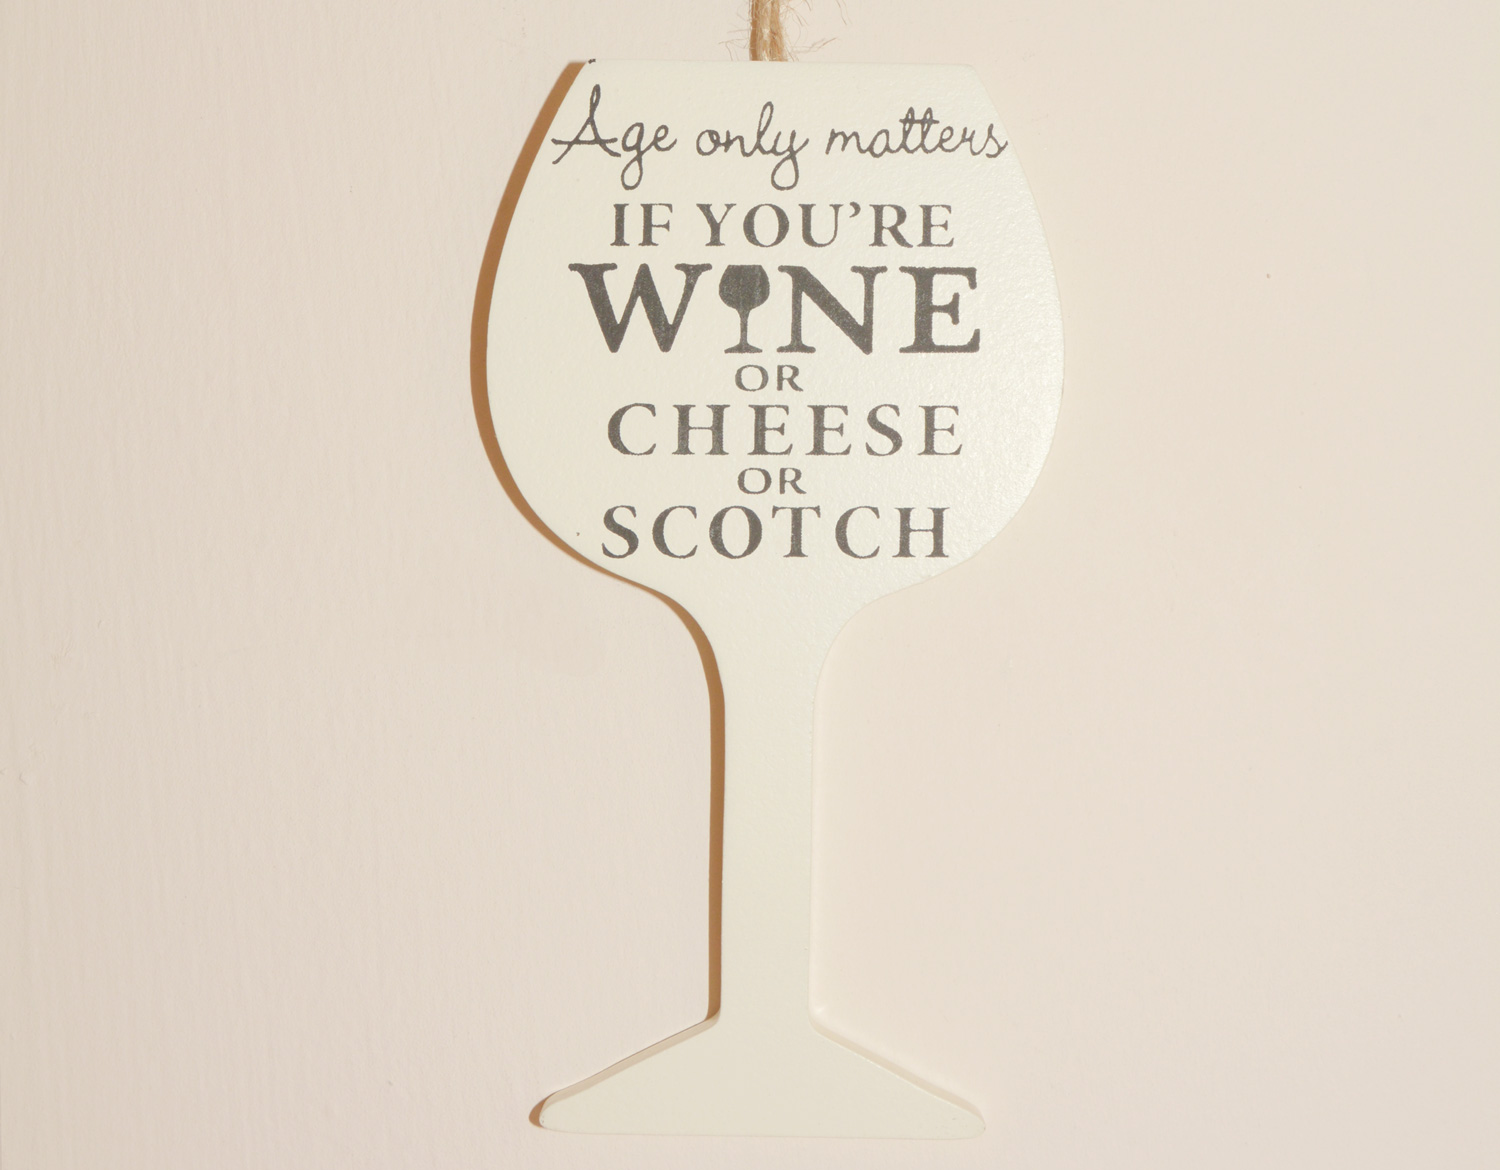 Wine Hanging Sign - Age only matters if you're wine or cheese or scotch